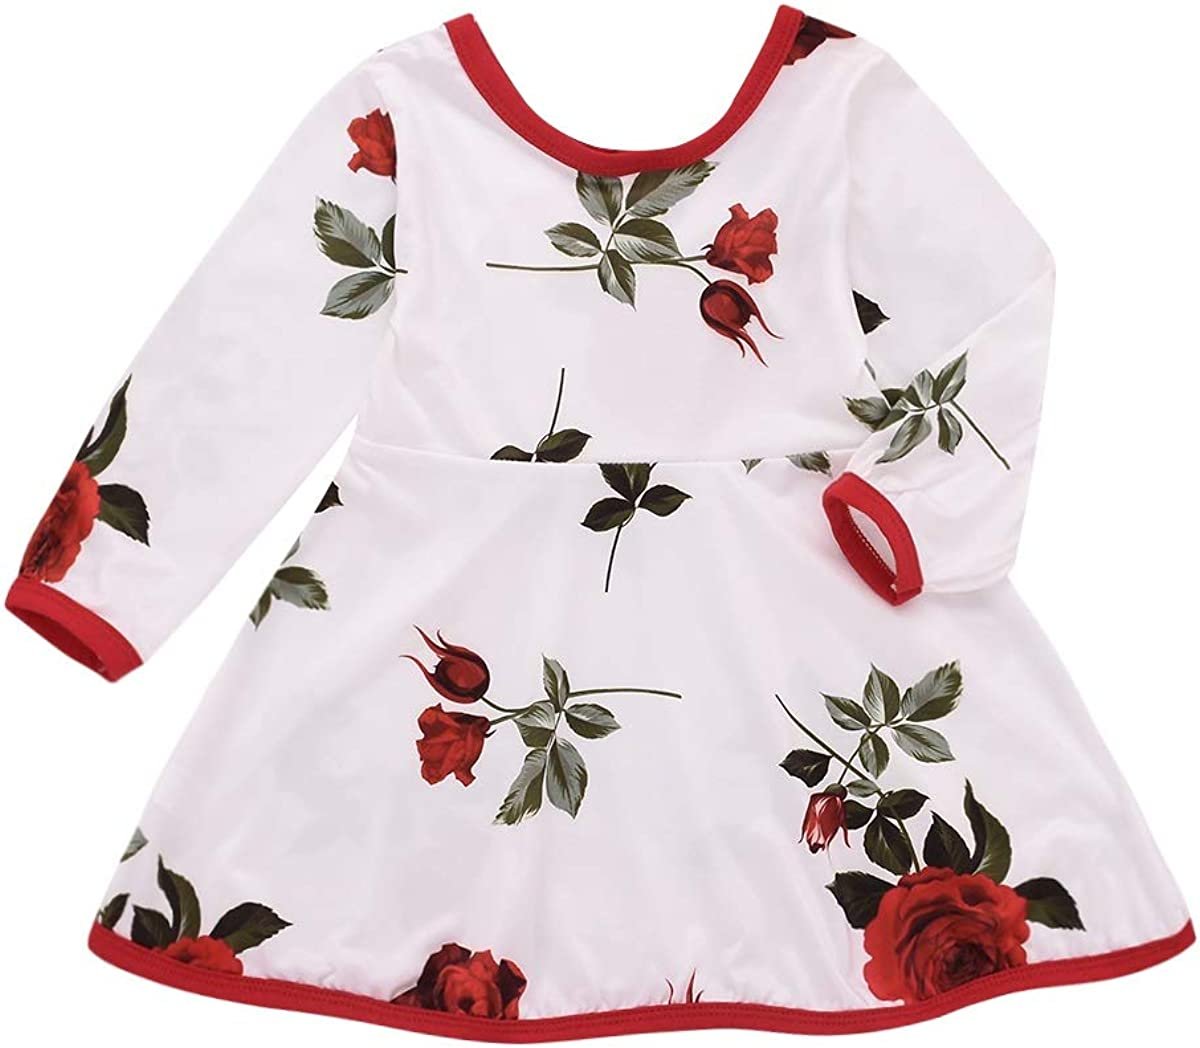 Borlai Kids Baby Girl Dress Rose Printed Skirt Toddler Casual Party Dress Outfit